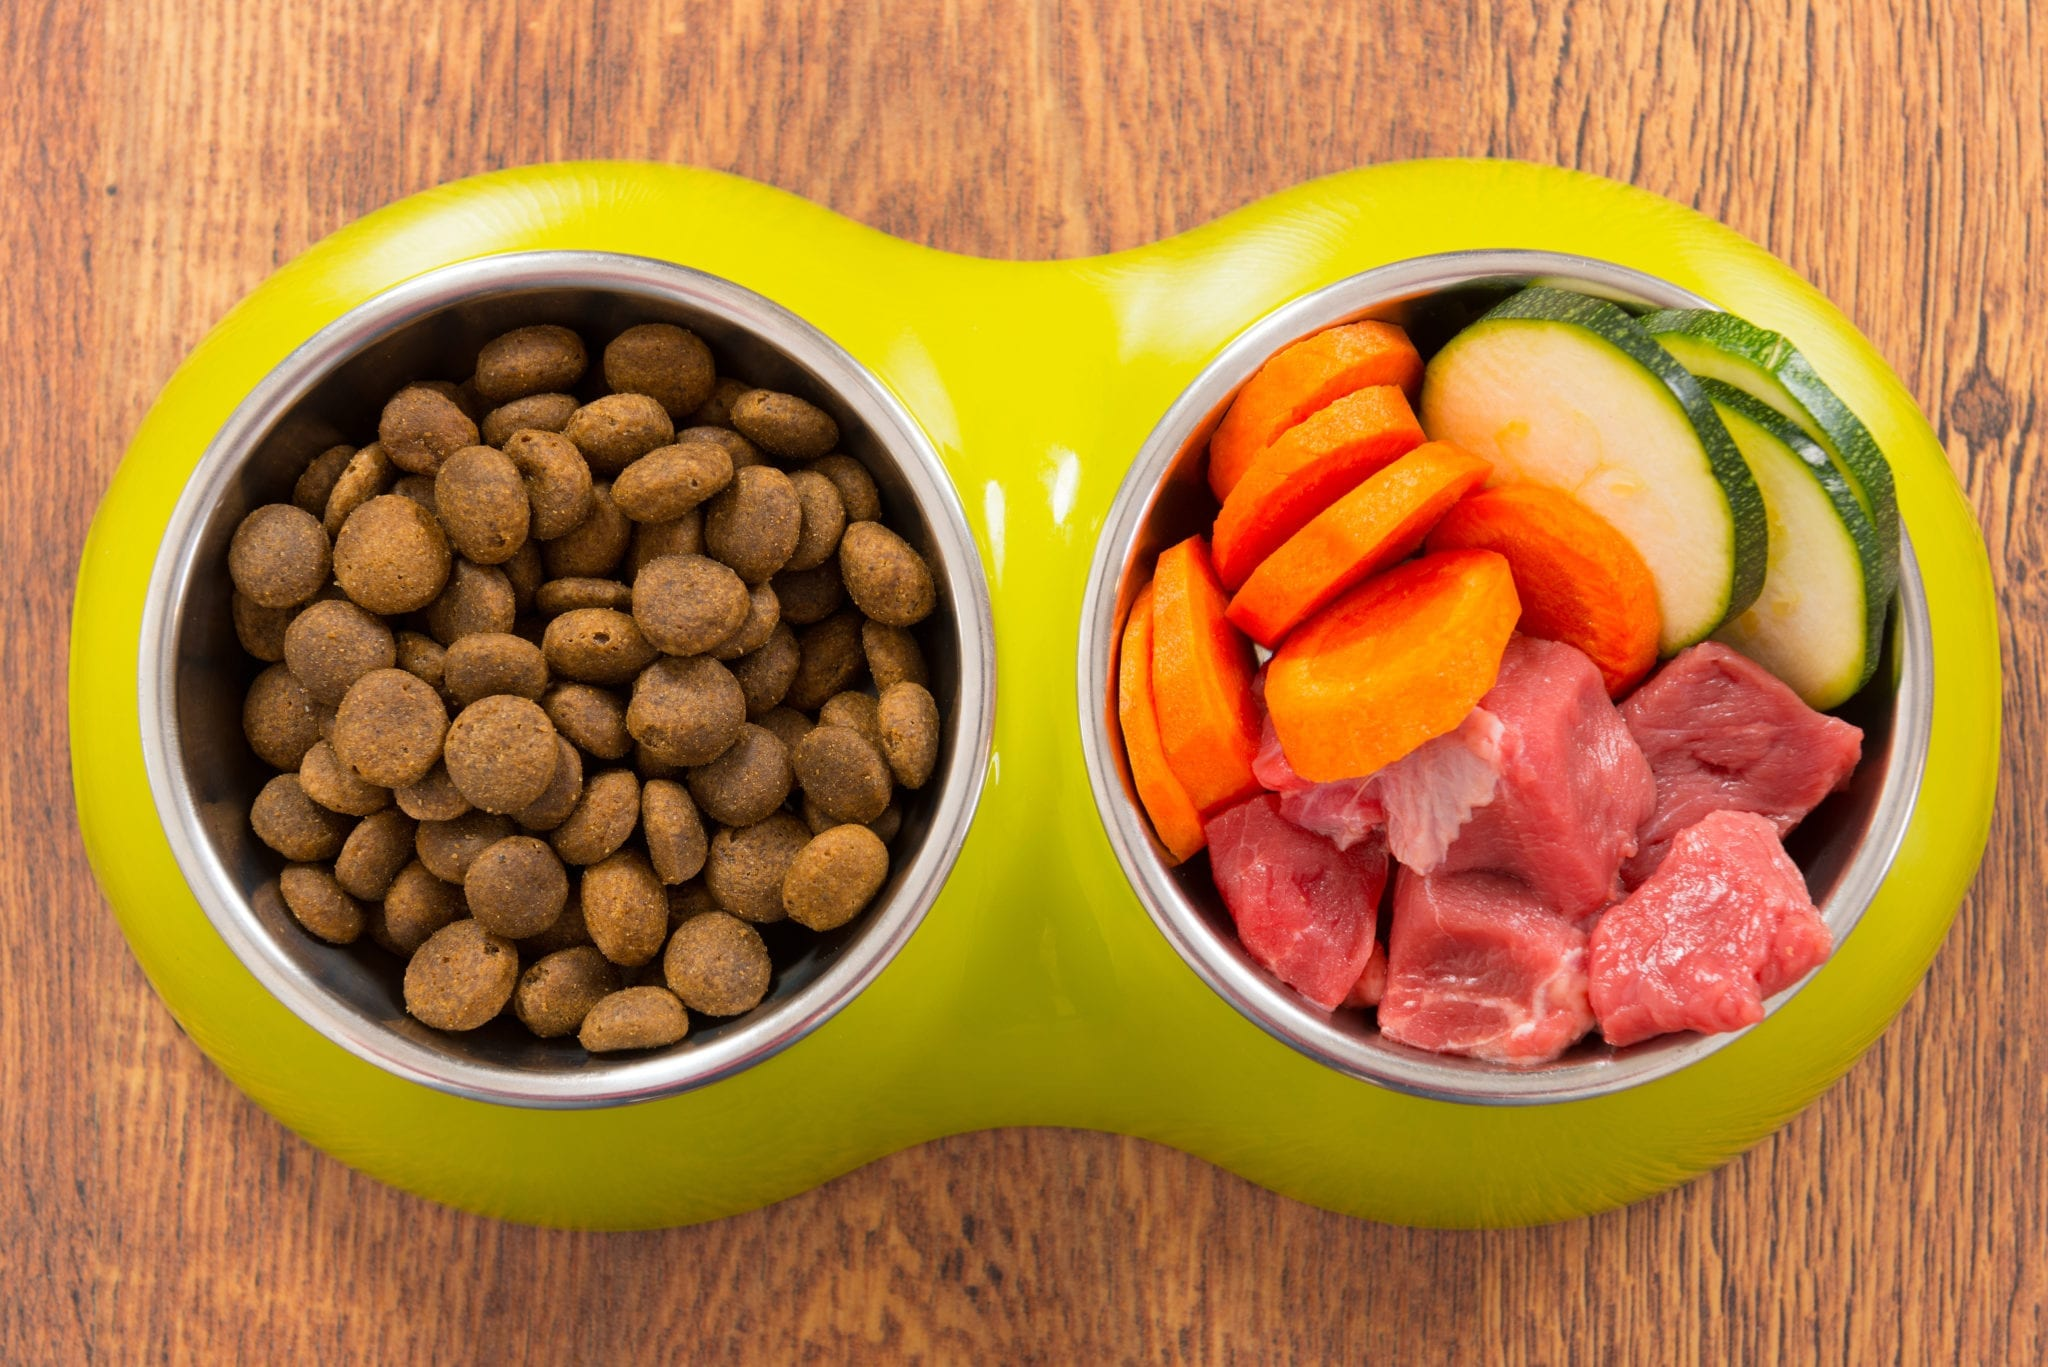 A healthy, balanced diet, even on holidays, is best for your dog